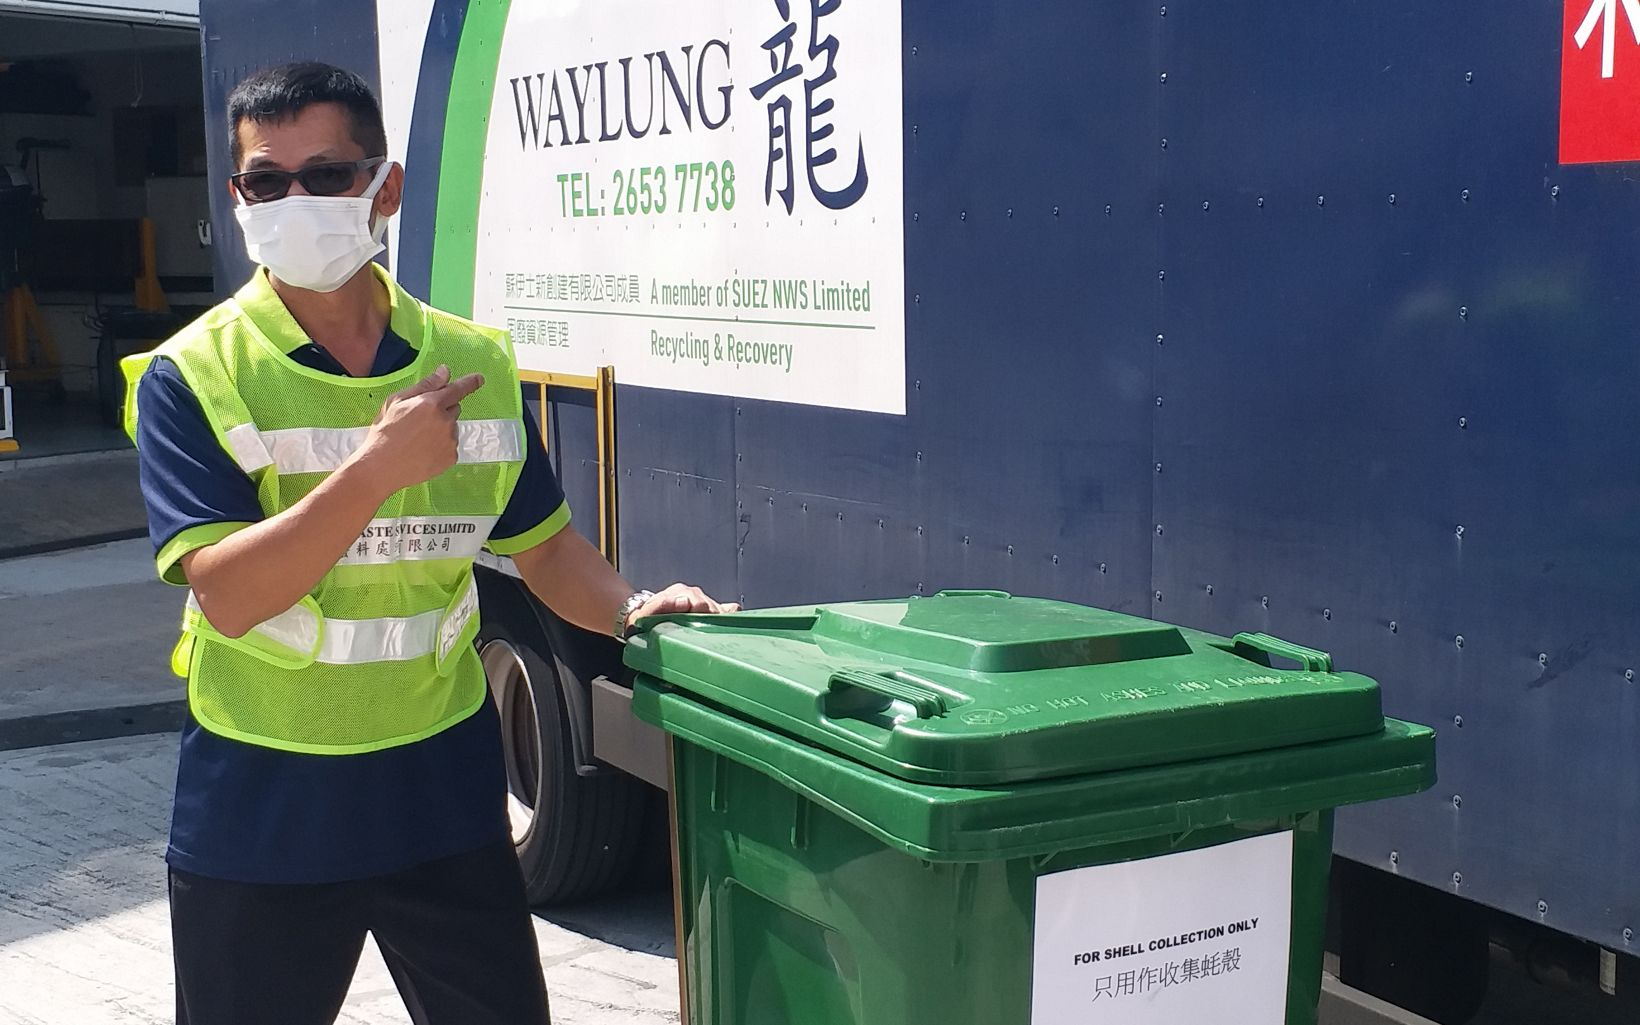 A trash collector stands next to a blue trash container in front of a large truck.